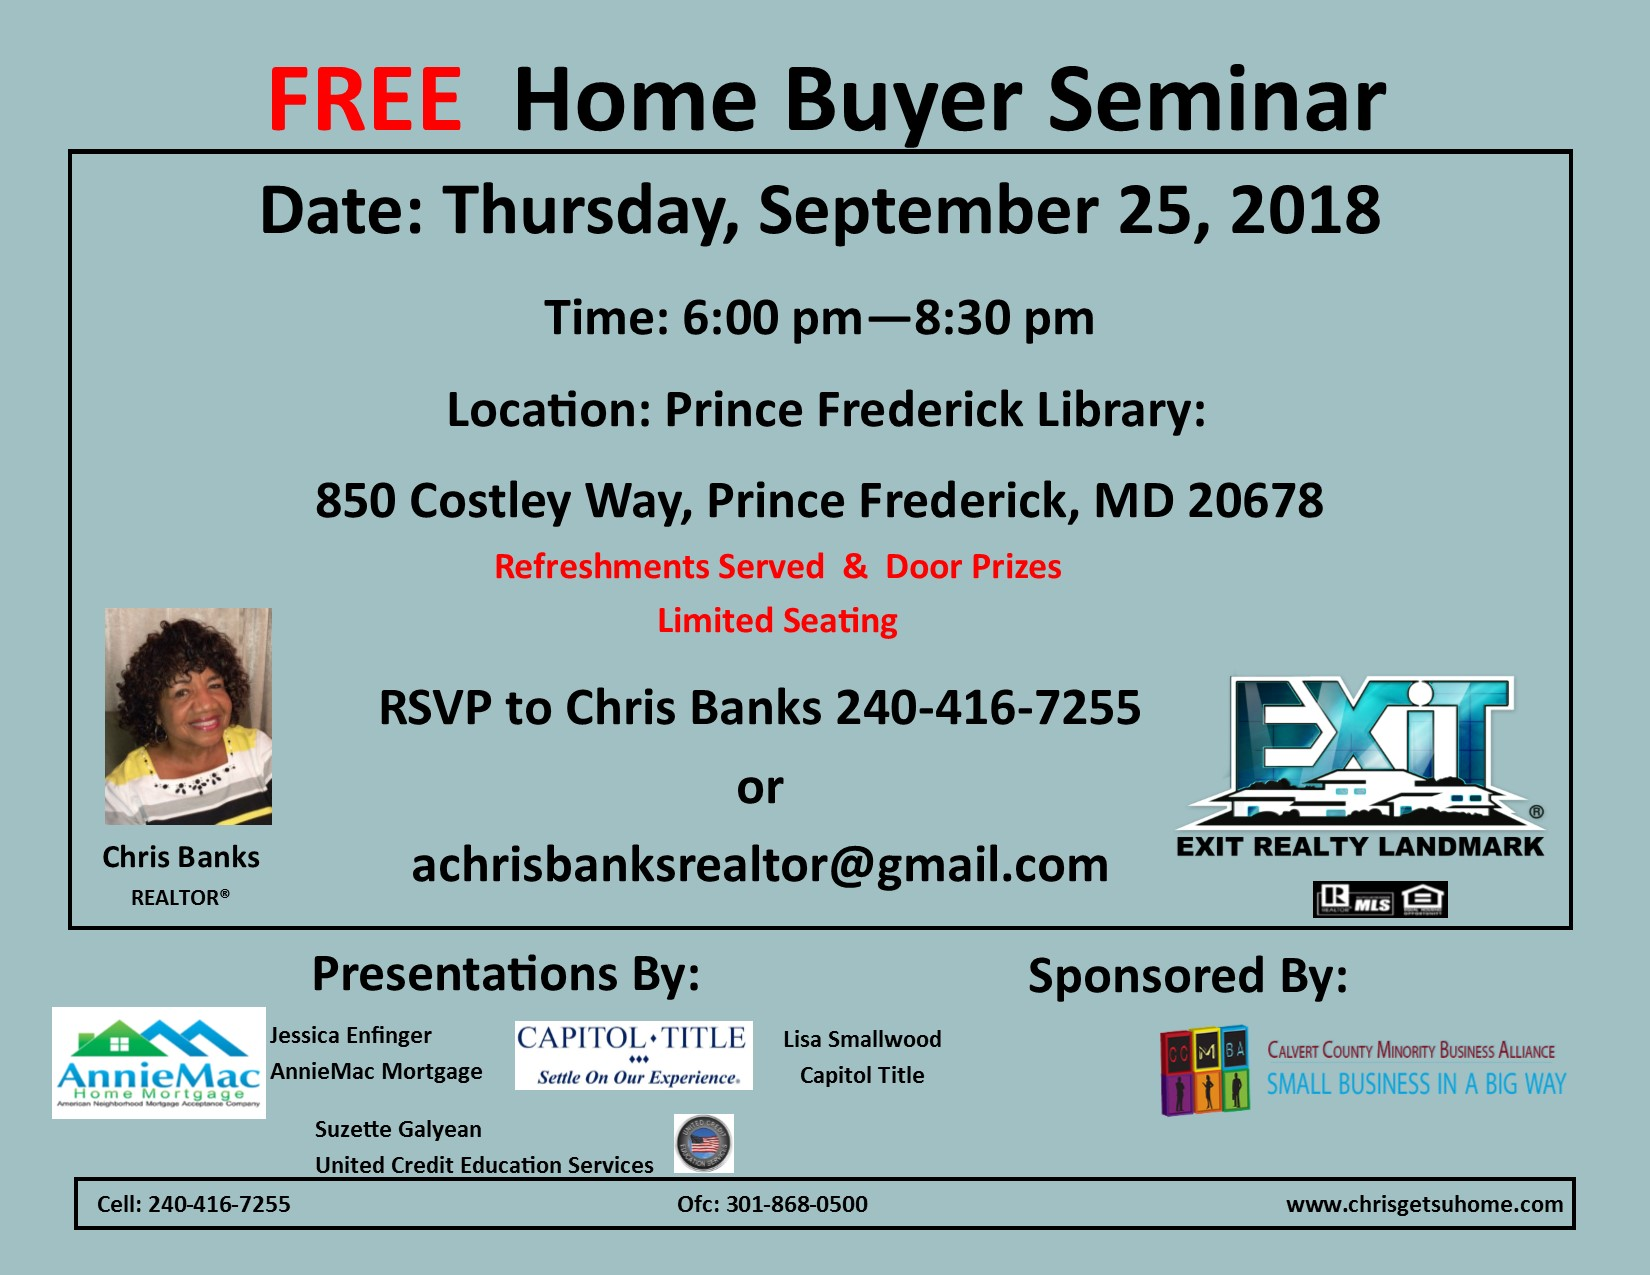 Home Buyer Seminar with Chris Banks